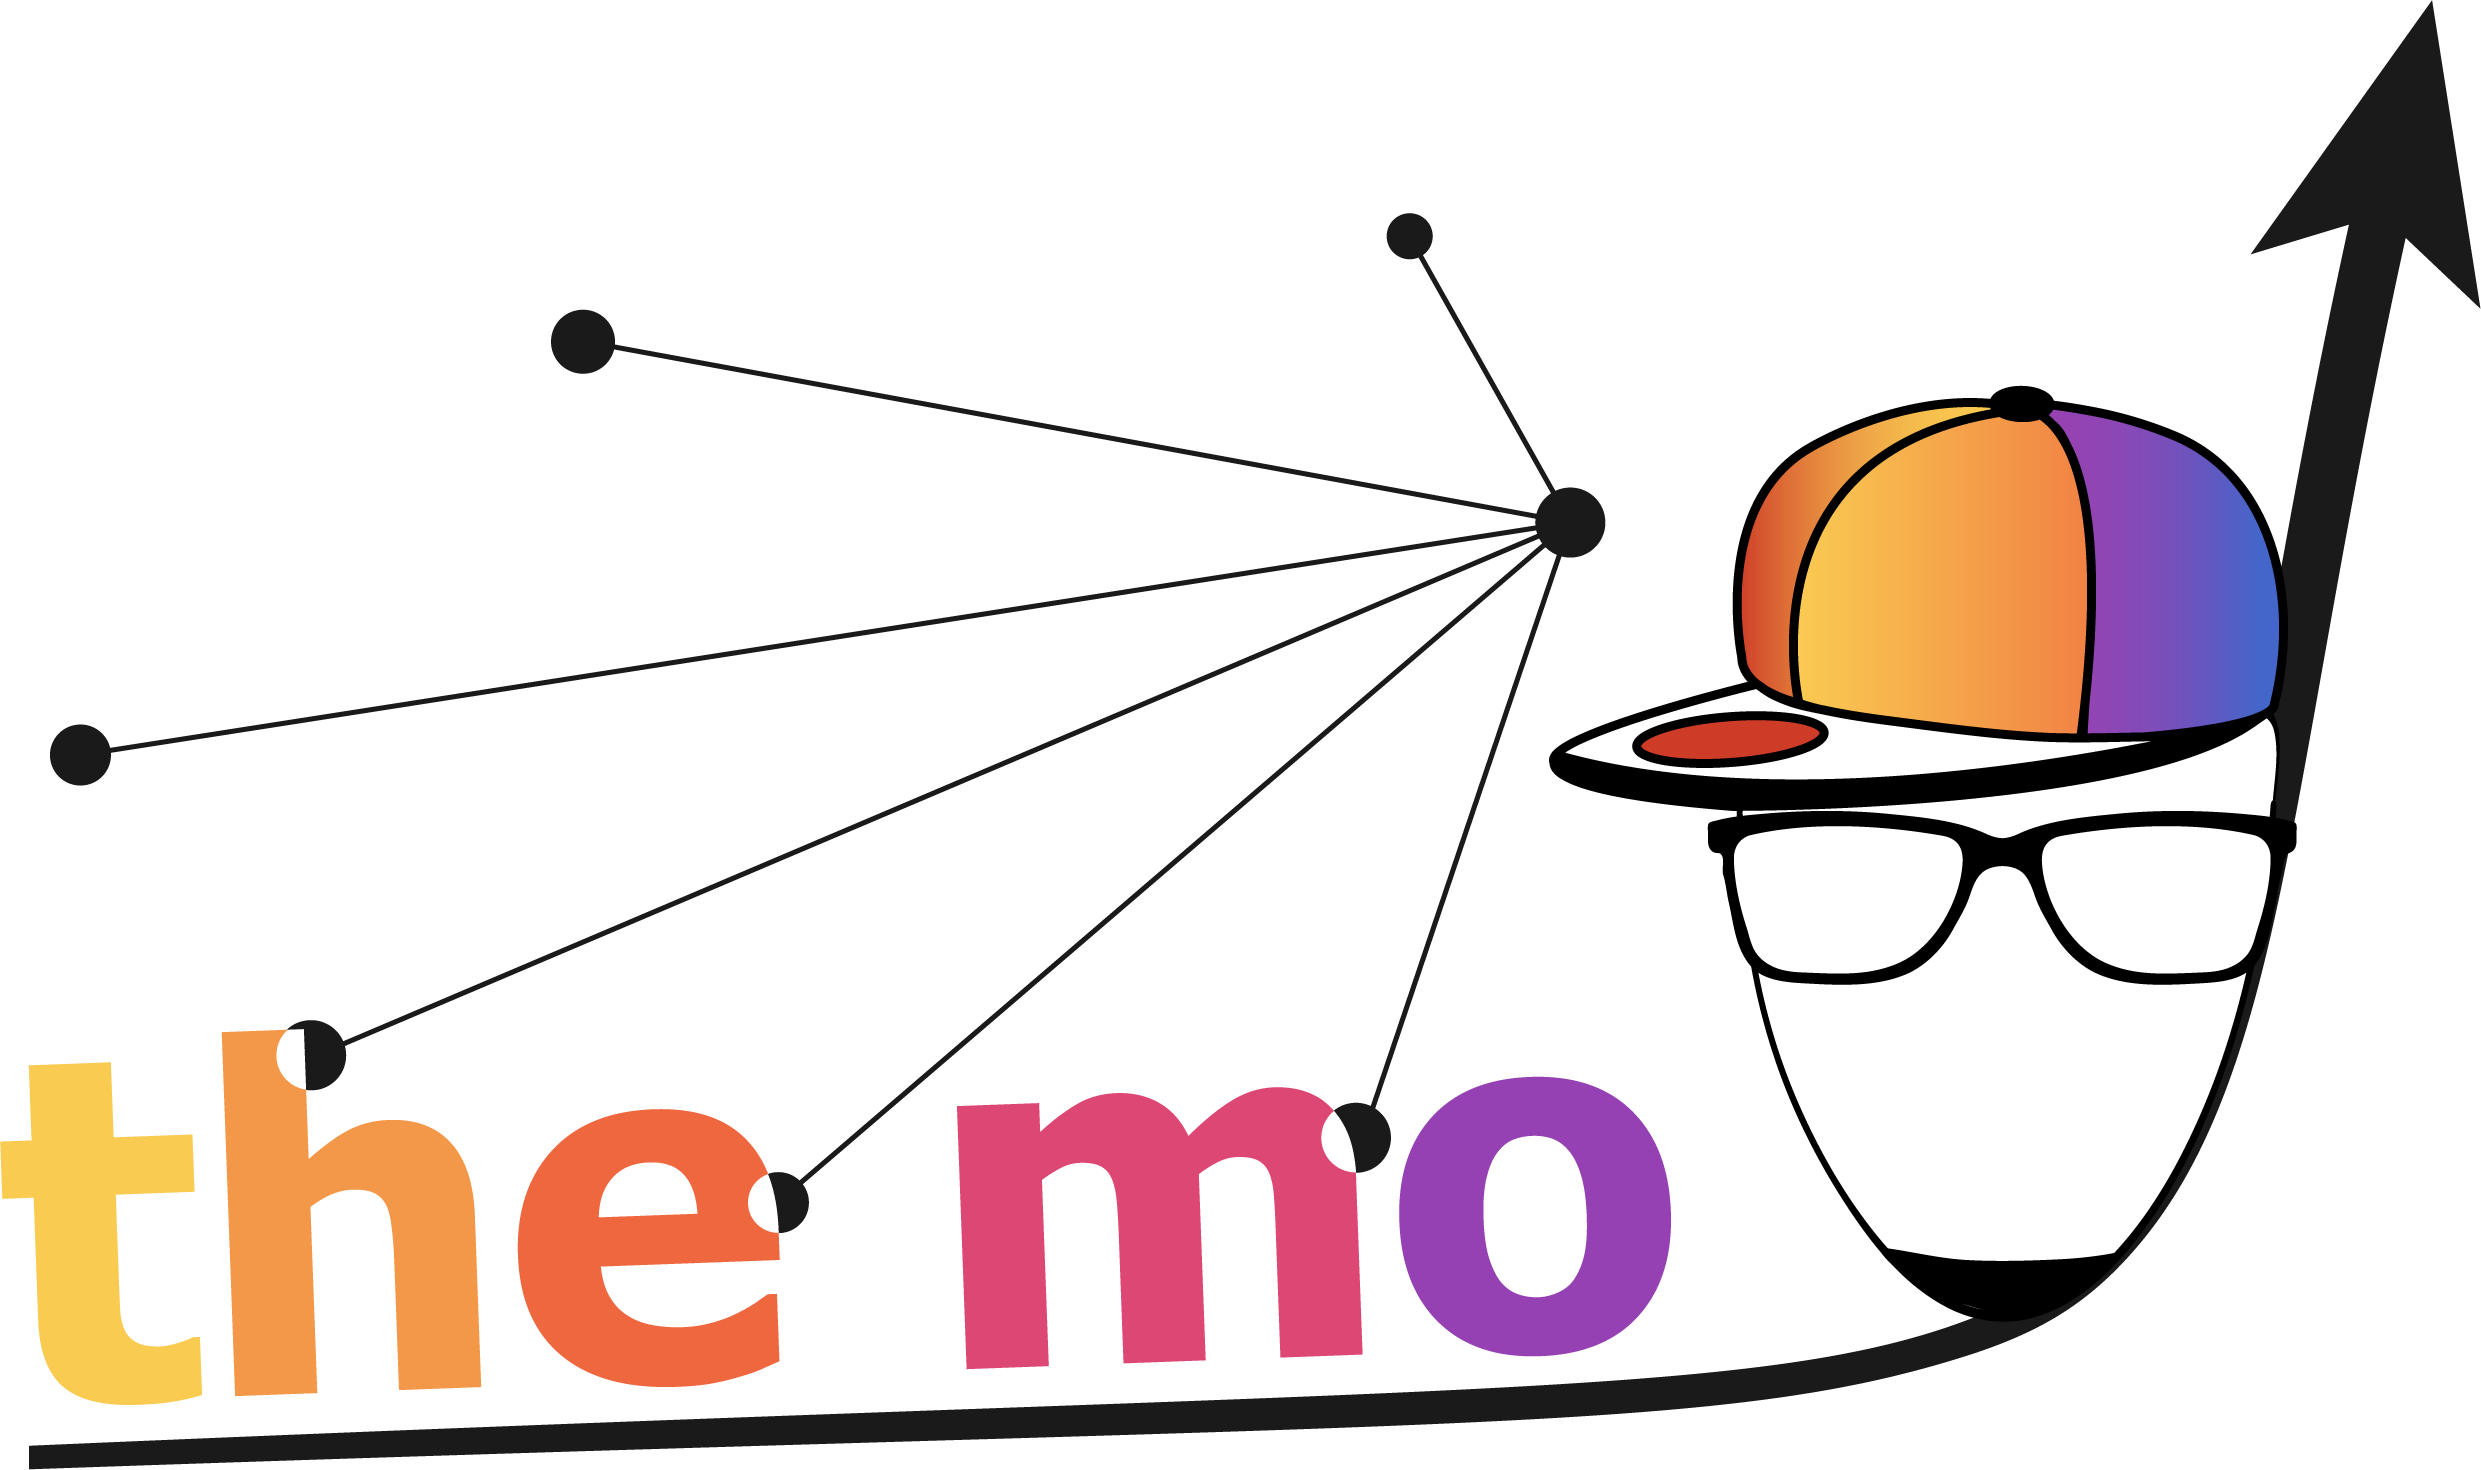 TheMo - Makes your Business visible